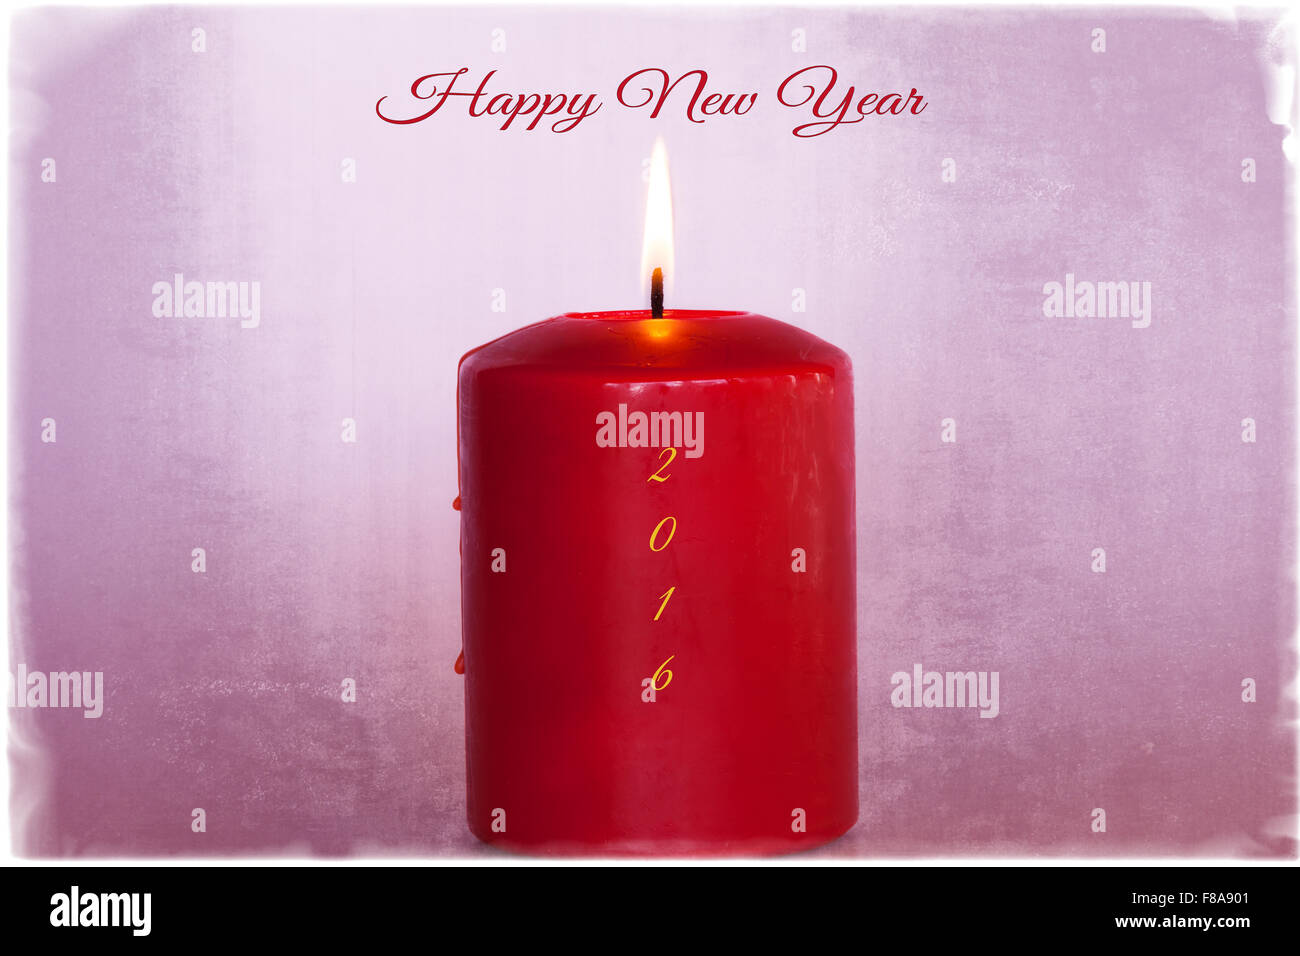 happy new year greeting card with flaming candle text and border